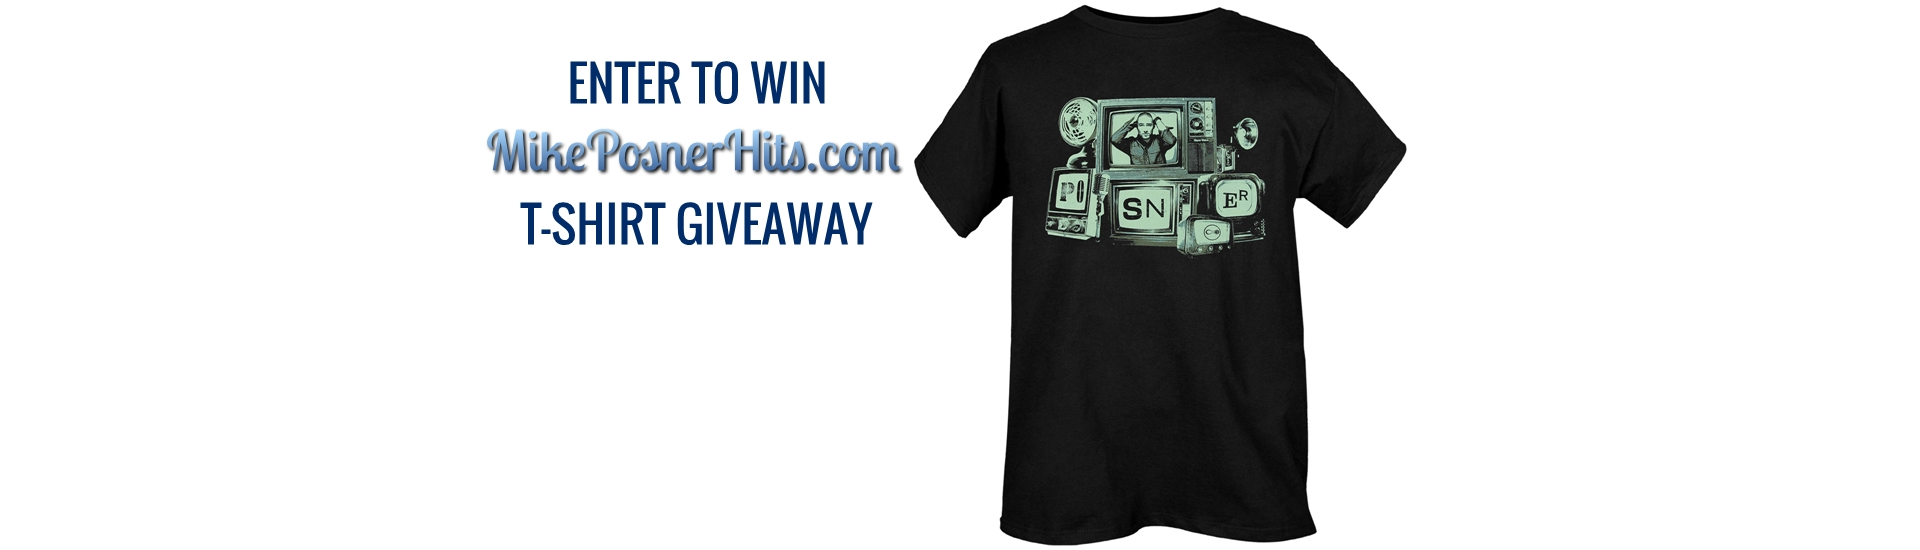 WIN A Mike Posner T-SHIRT!